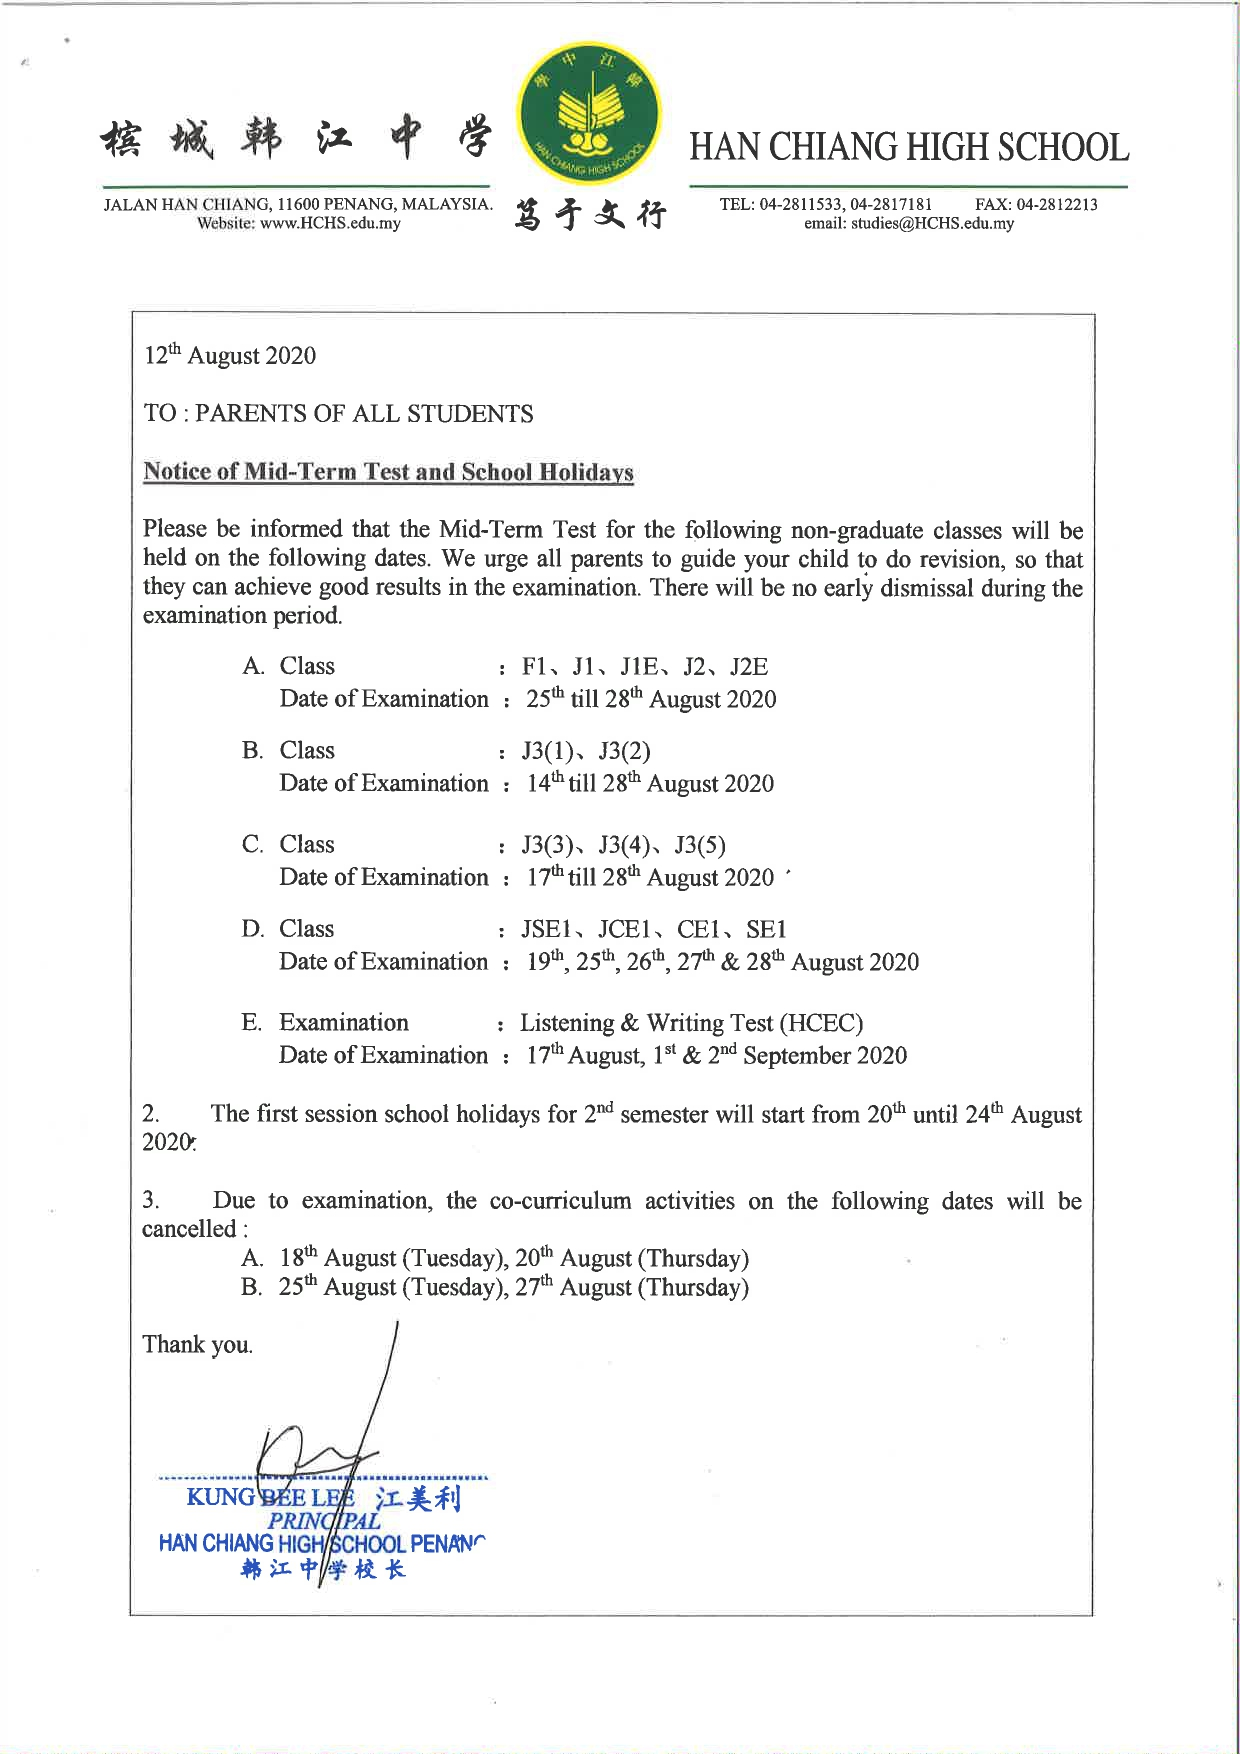 Notice - Mid-Term Test and School Holidays - 120820_page-0002